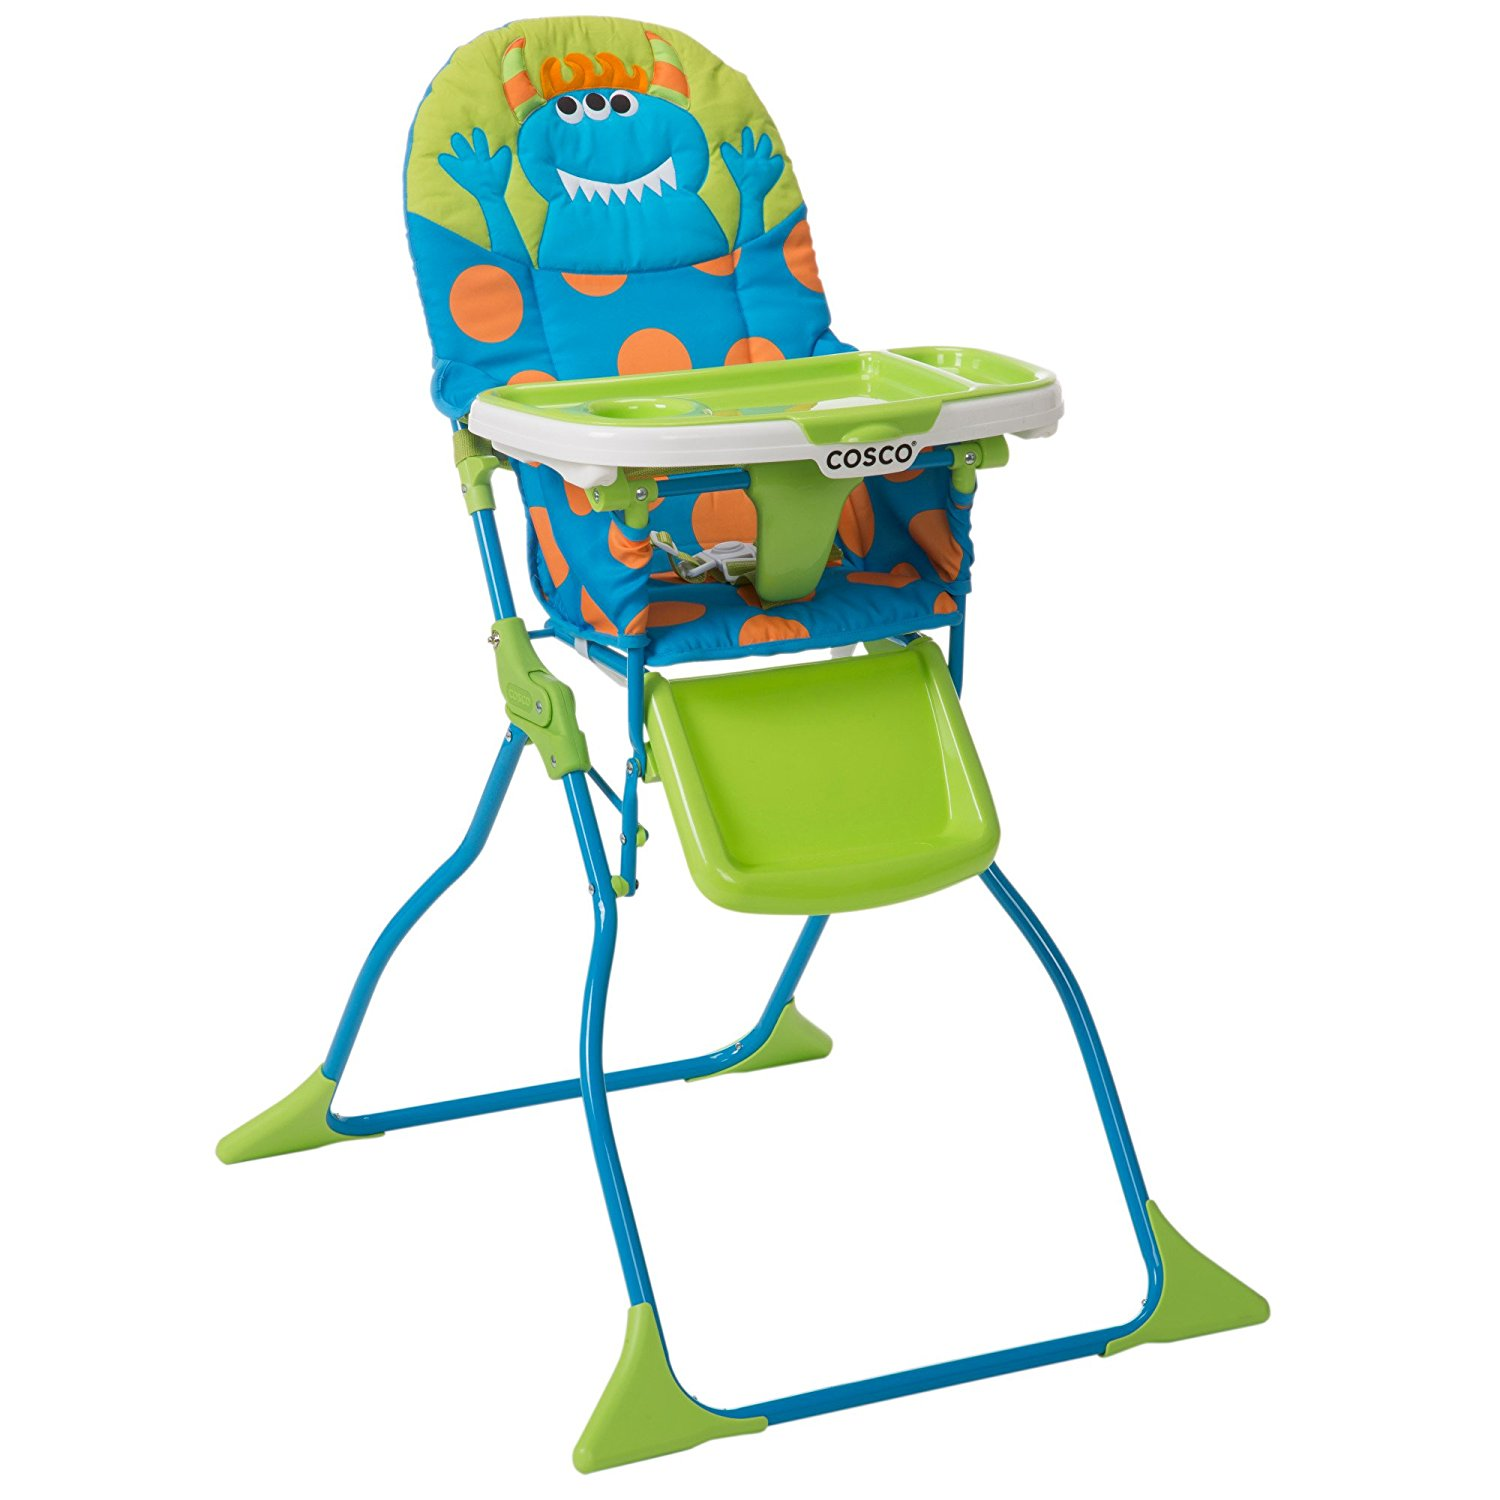 best high chair, cosco high chair, monster syd high chair, best high chair for baby, best high chair for toddlers